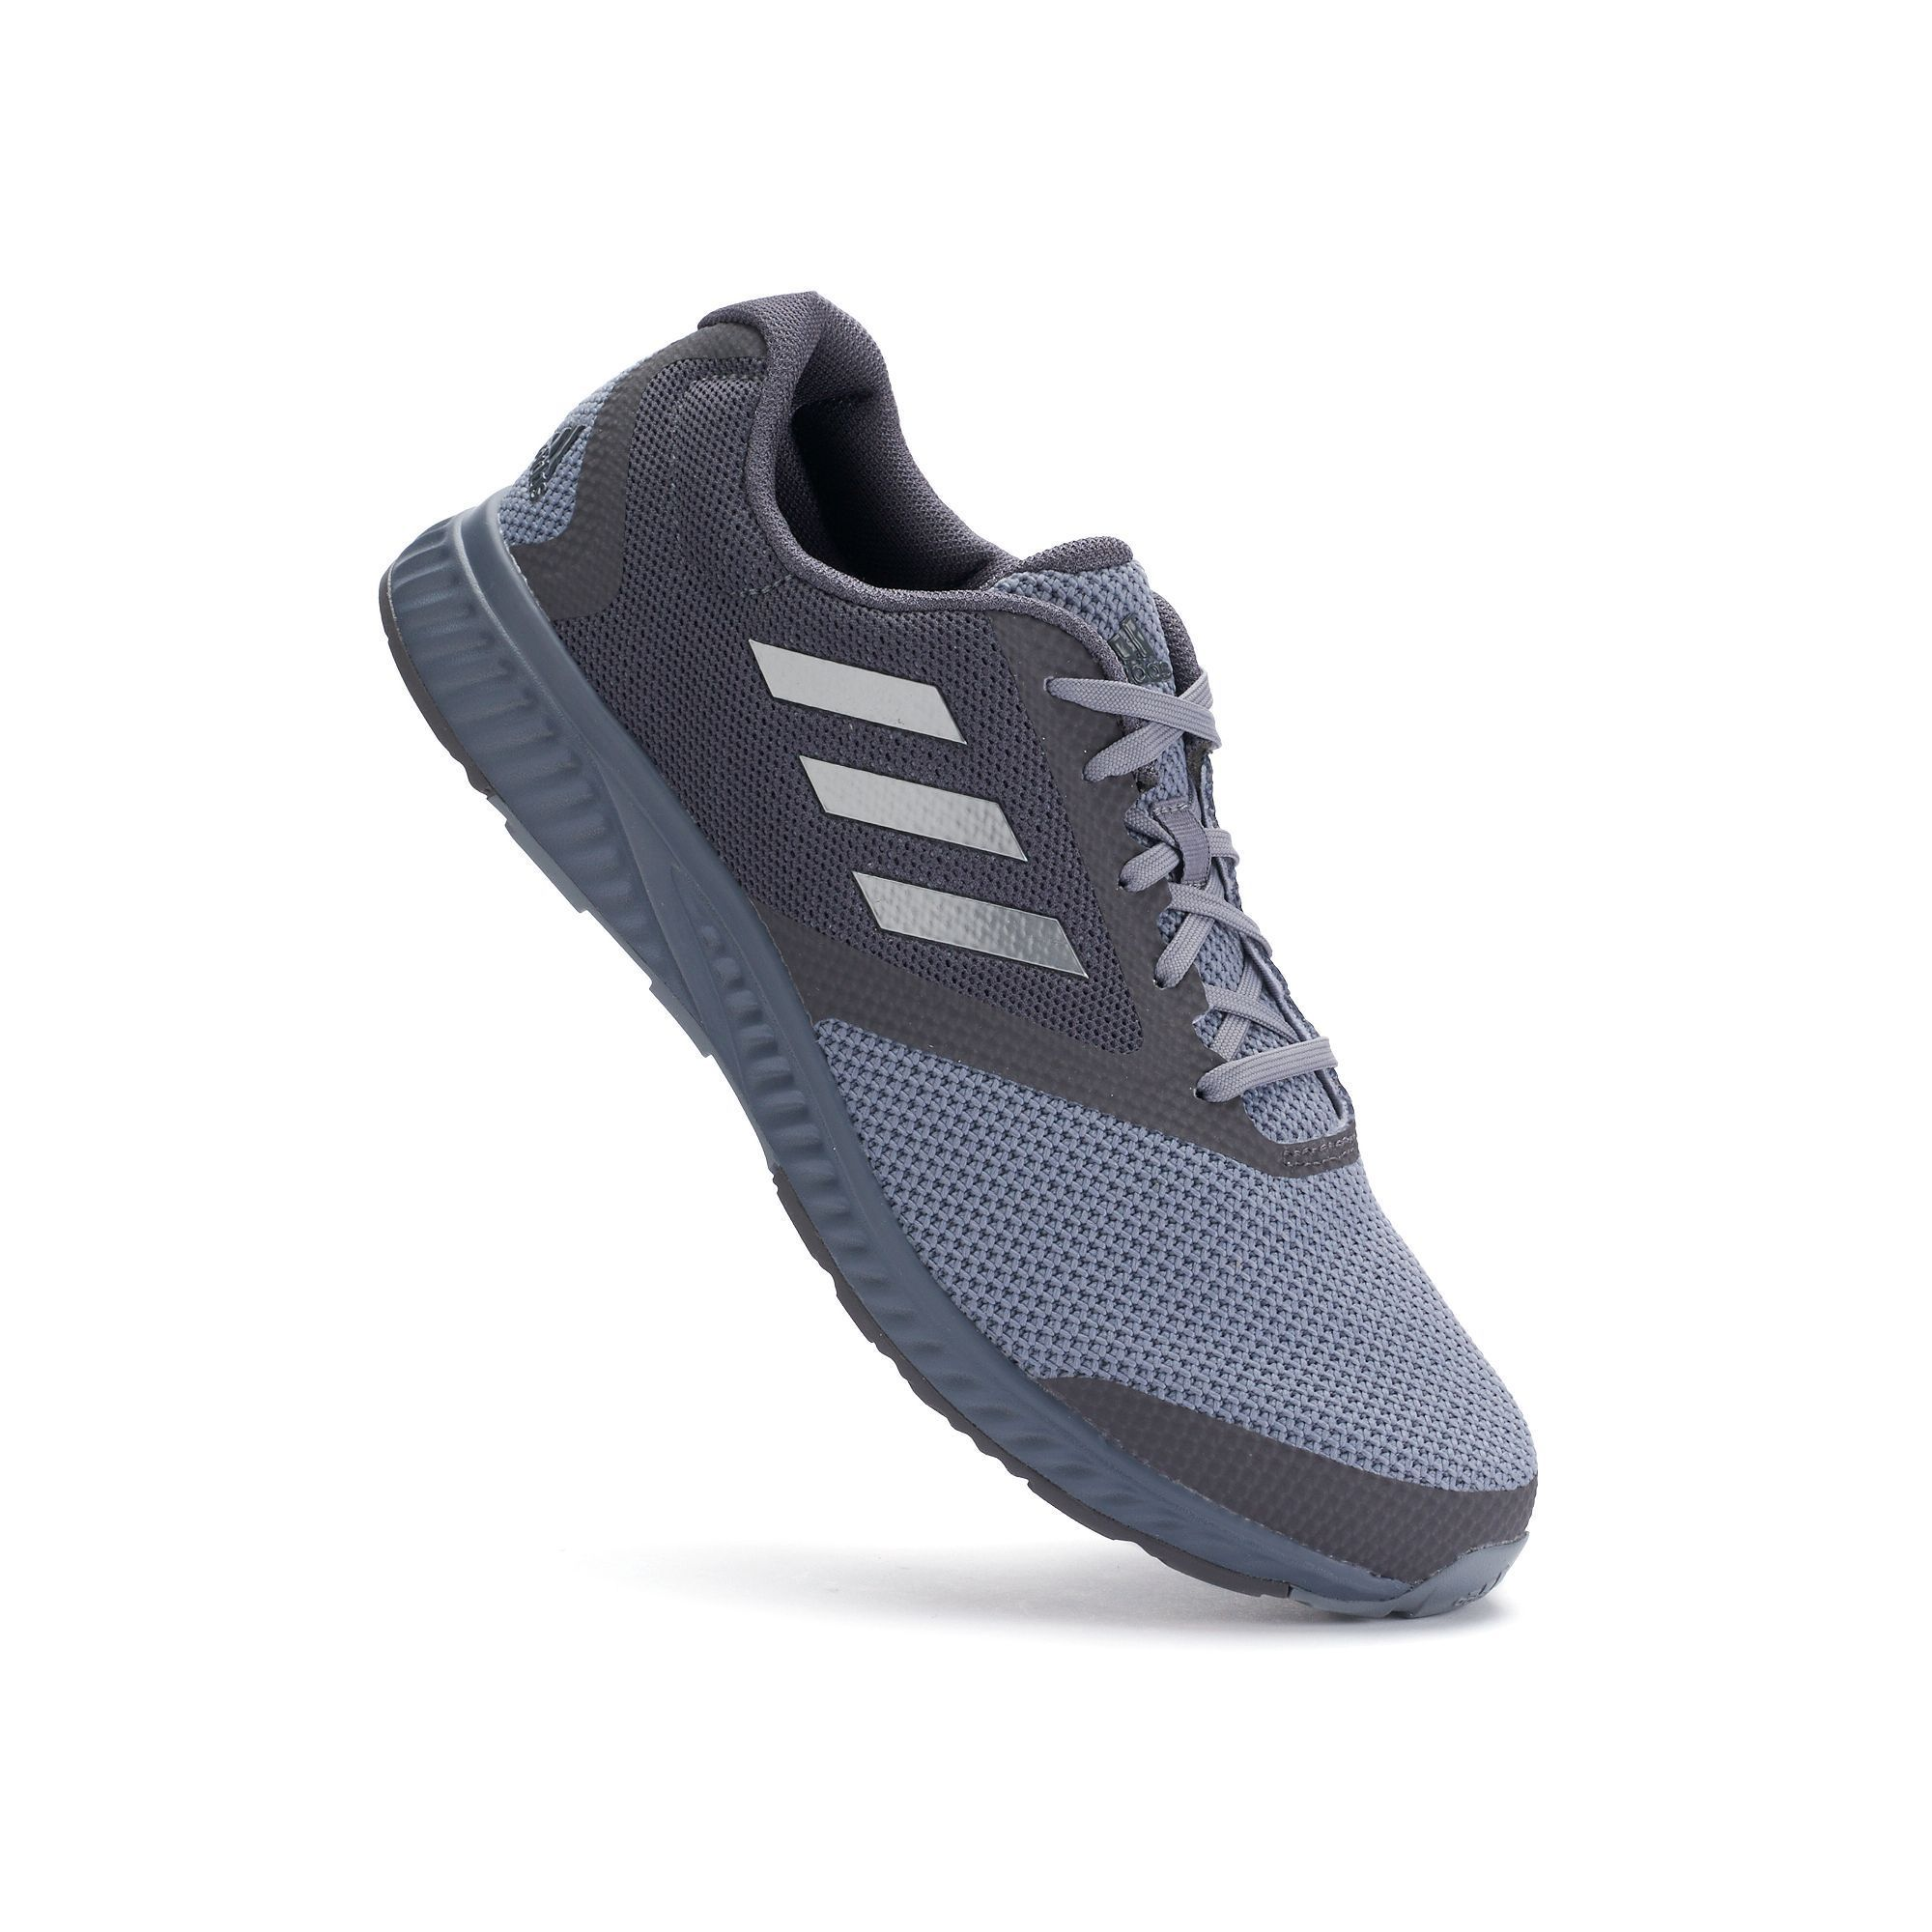 Adidas Edge RC Men's Running Shoes, Size: 9.5, ...